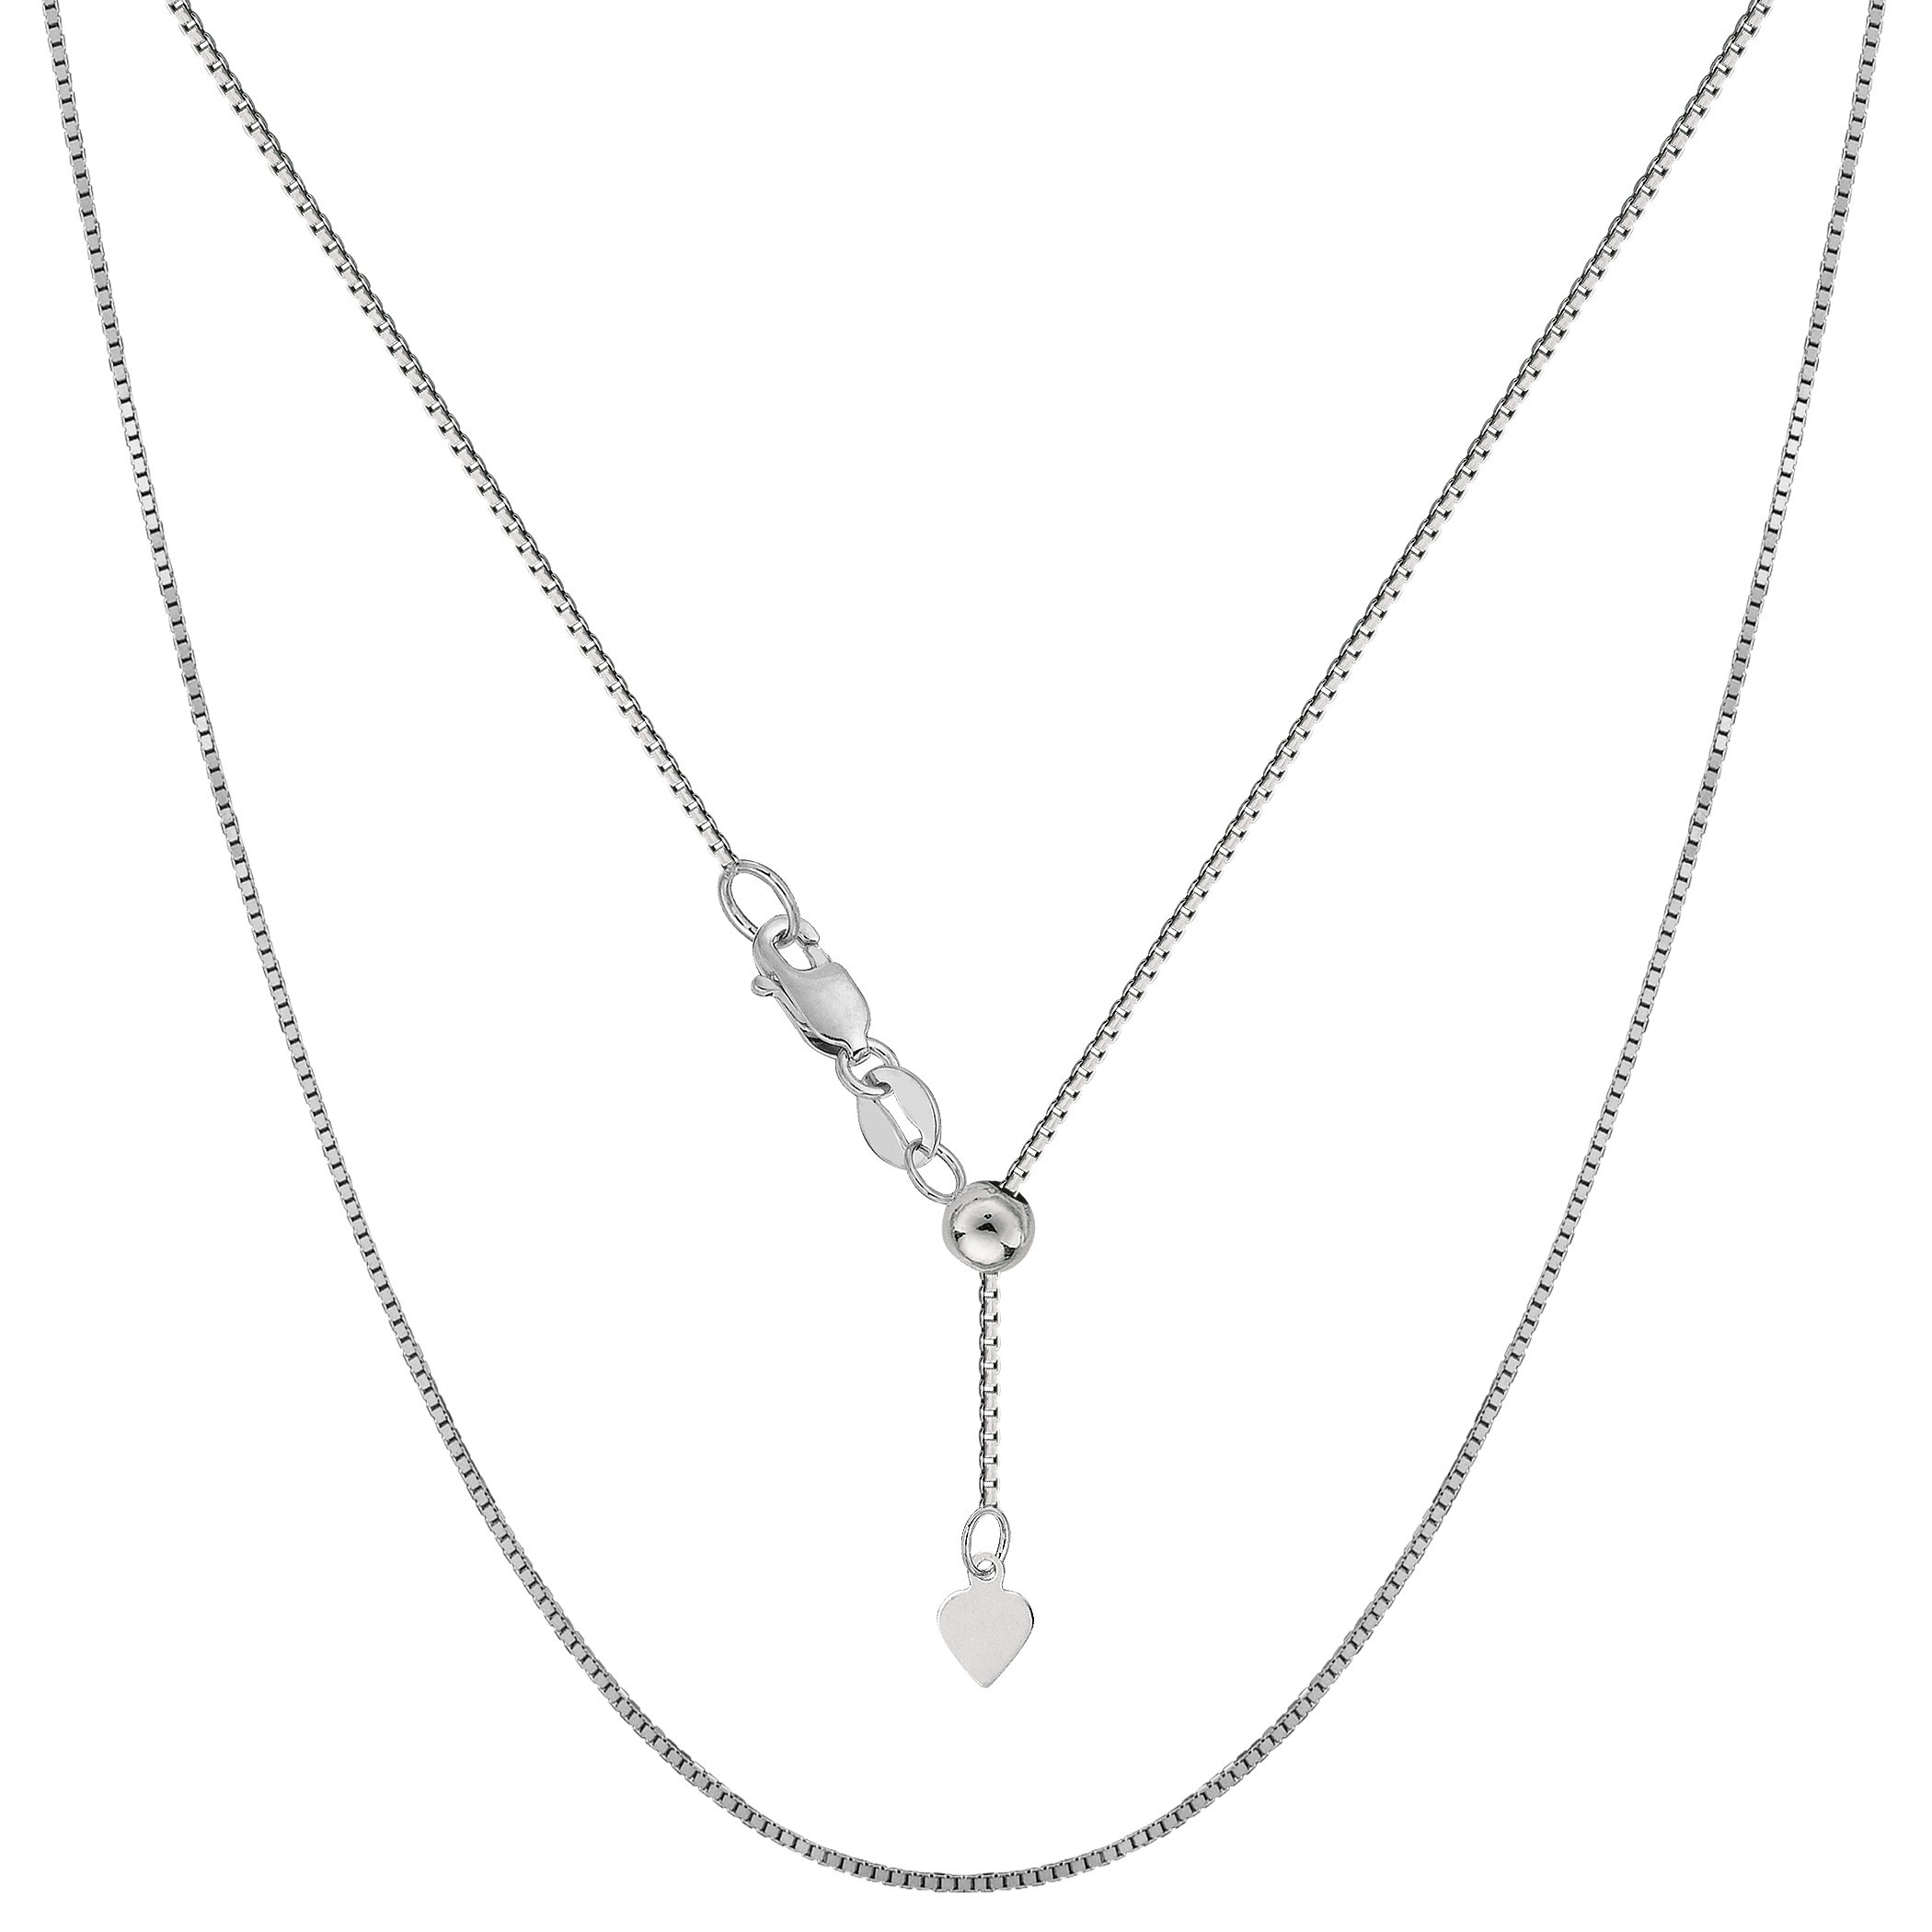 Spring Ring Clasp 925 Sterling Silver Italian 1.5mm Magic Round Wheat Chain Crafted Necklace Thin Lightweight Strong 14 Inches